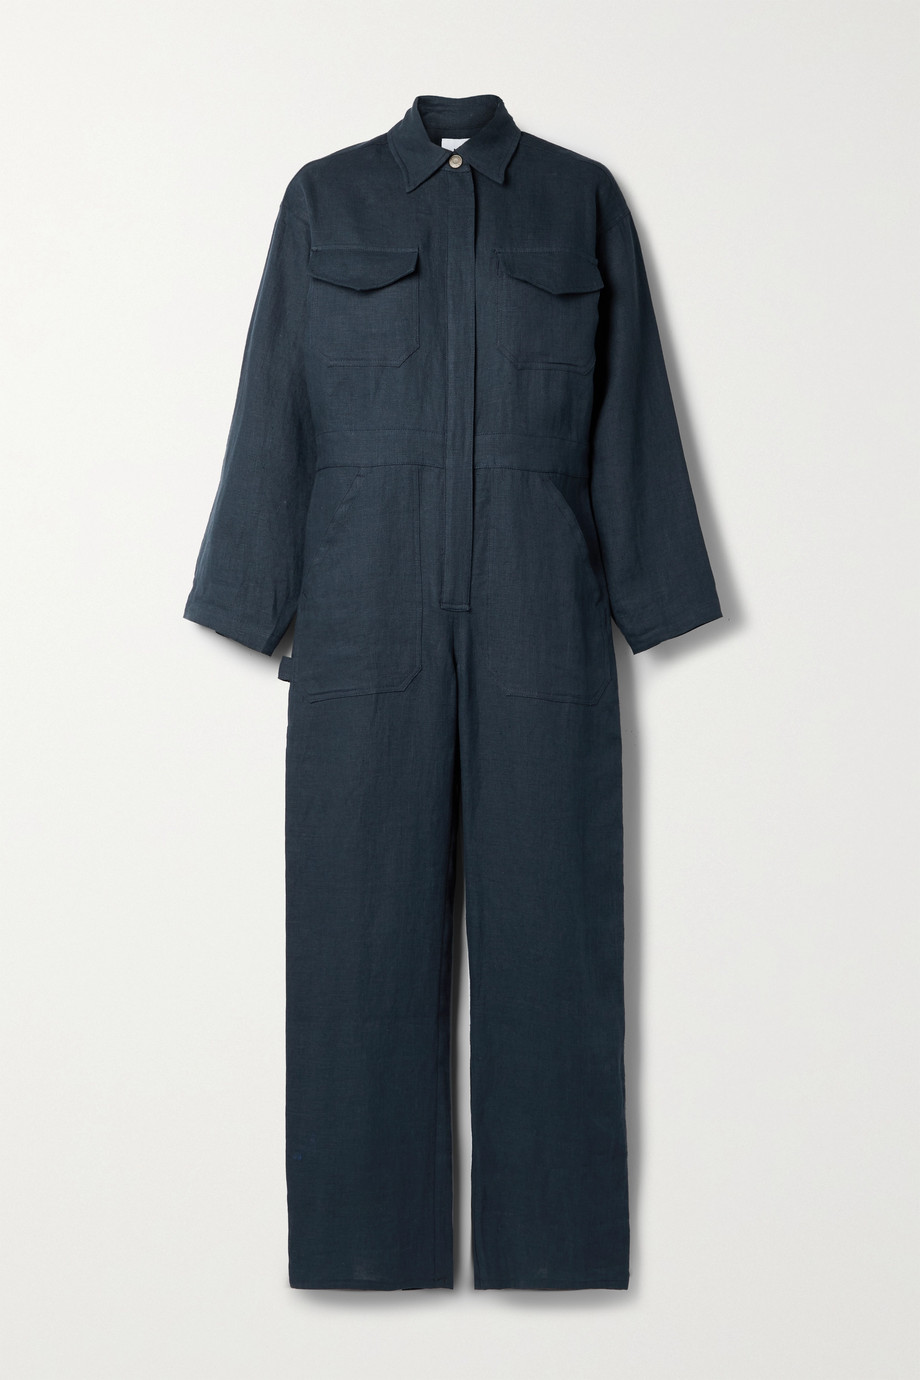 Rivet Utility + NET SUSTAIN Powerhouse linen jumpsuit